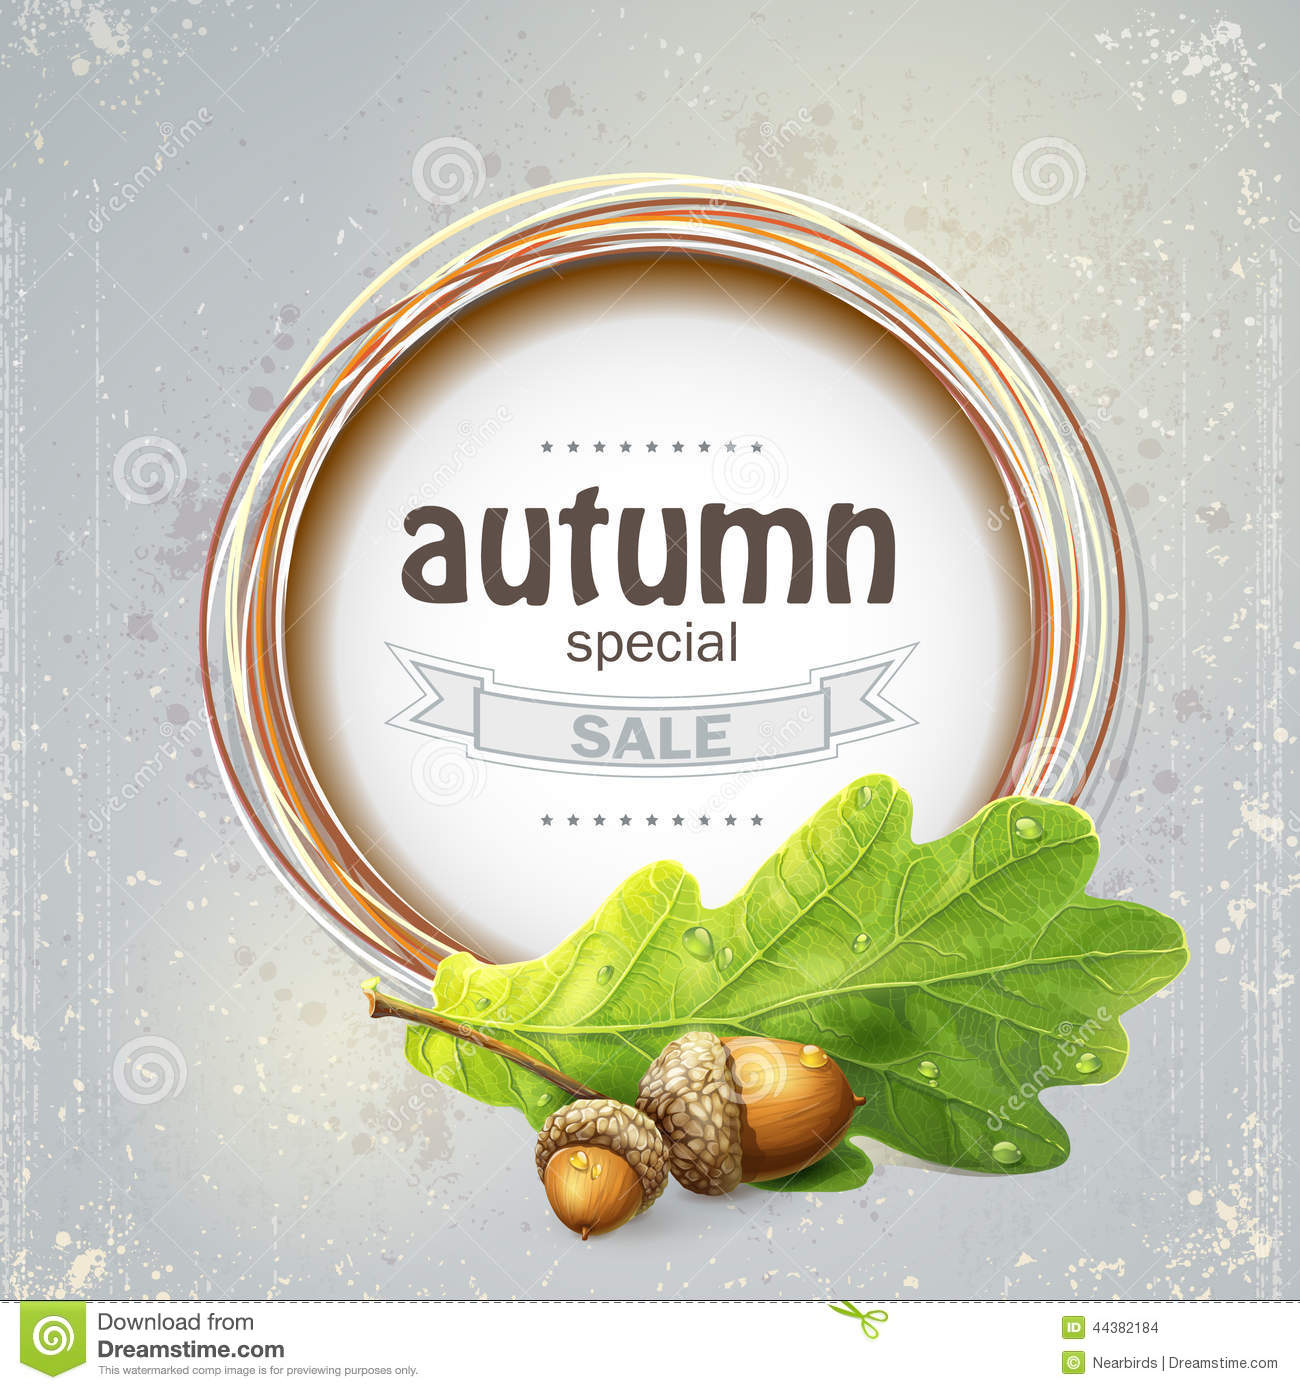 Background image for the big autumn sale with oak leaves with acorns